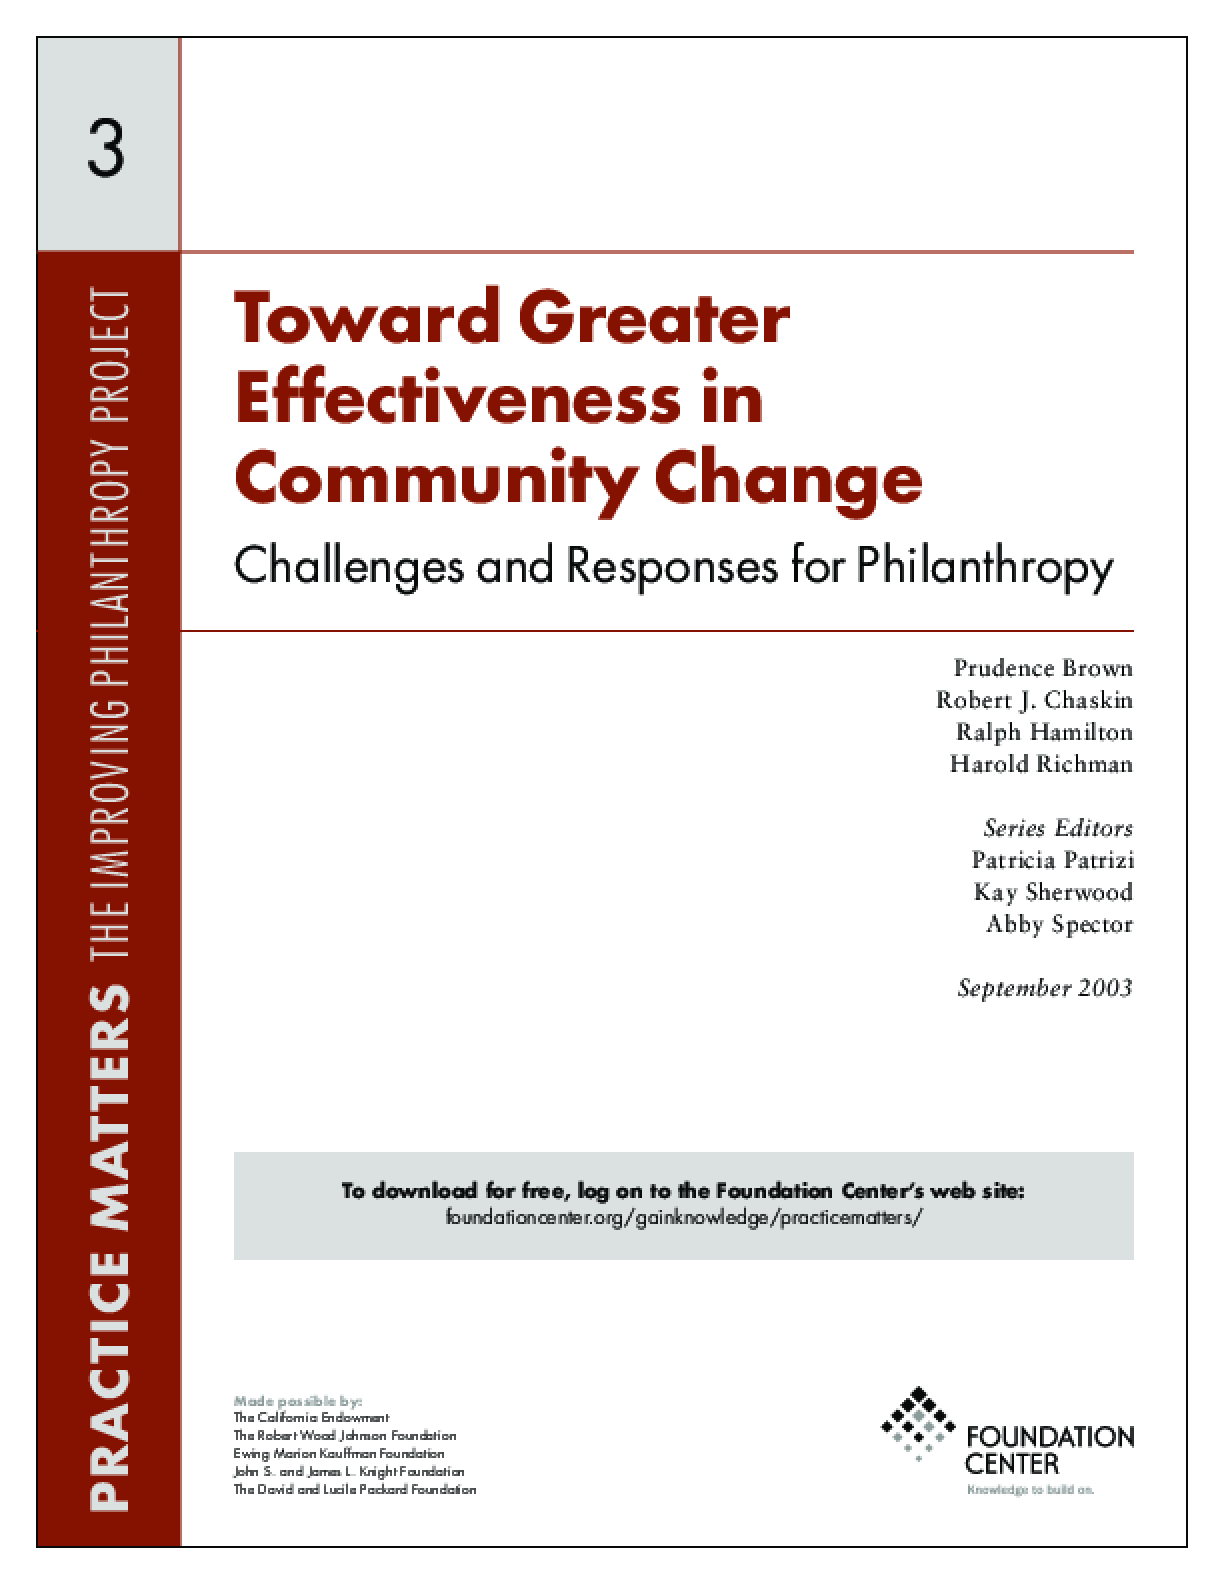 Toward Greater Effectiveness in Community Change: Challenges and Responses for Philanthropy - Executive Summary